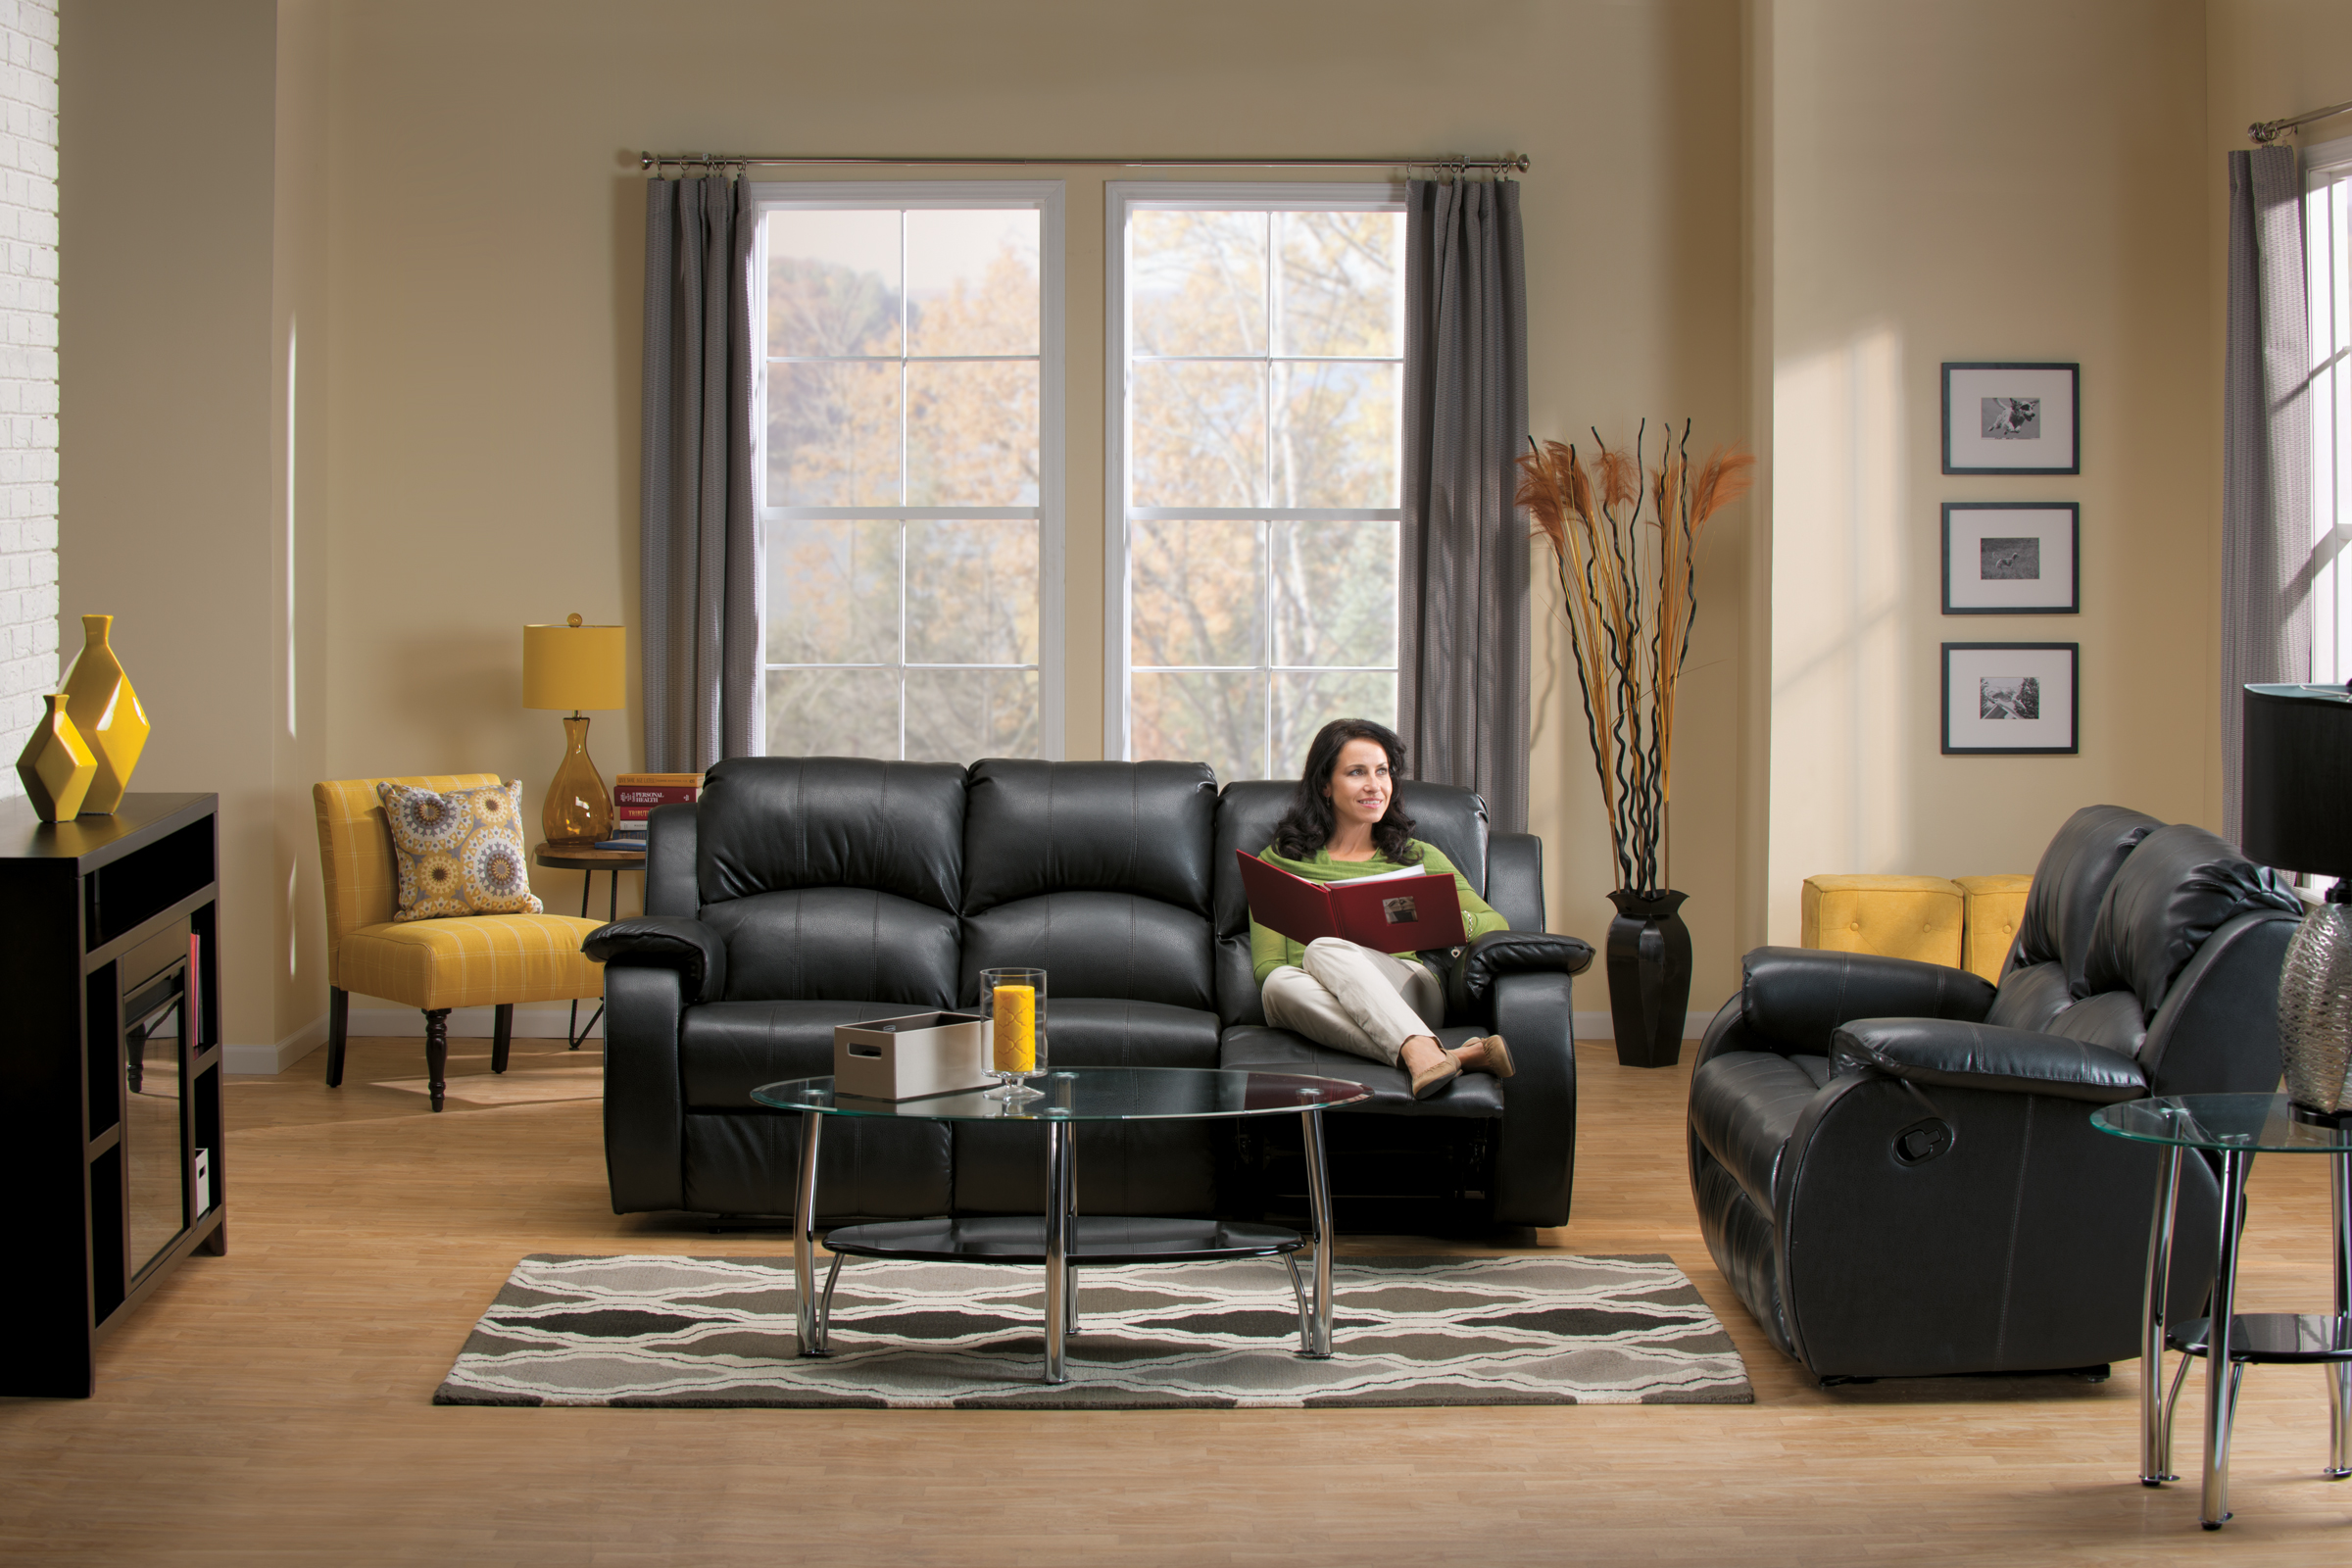 Tahoe Sofas from  649 99   We Pay Your Tax. Shop Living Room Furniture at Gardner White